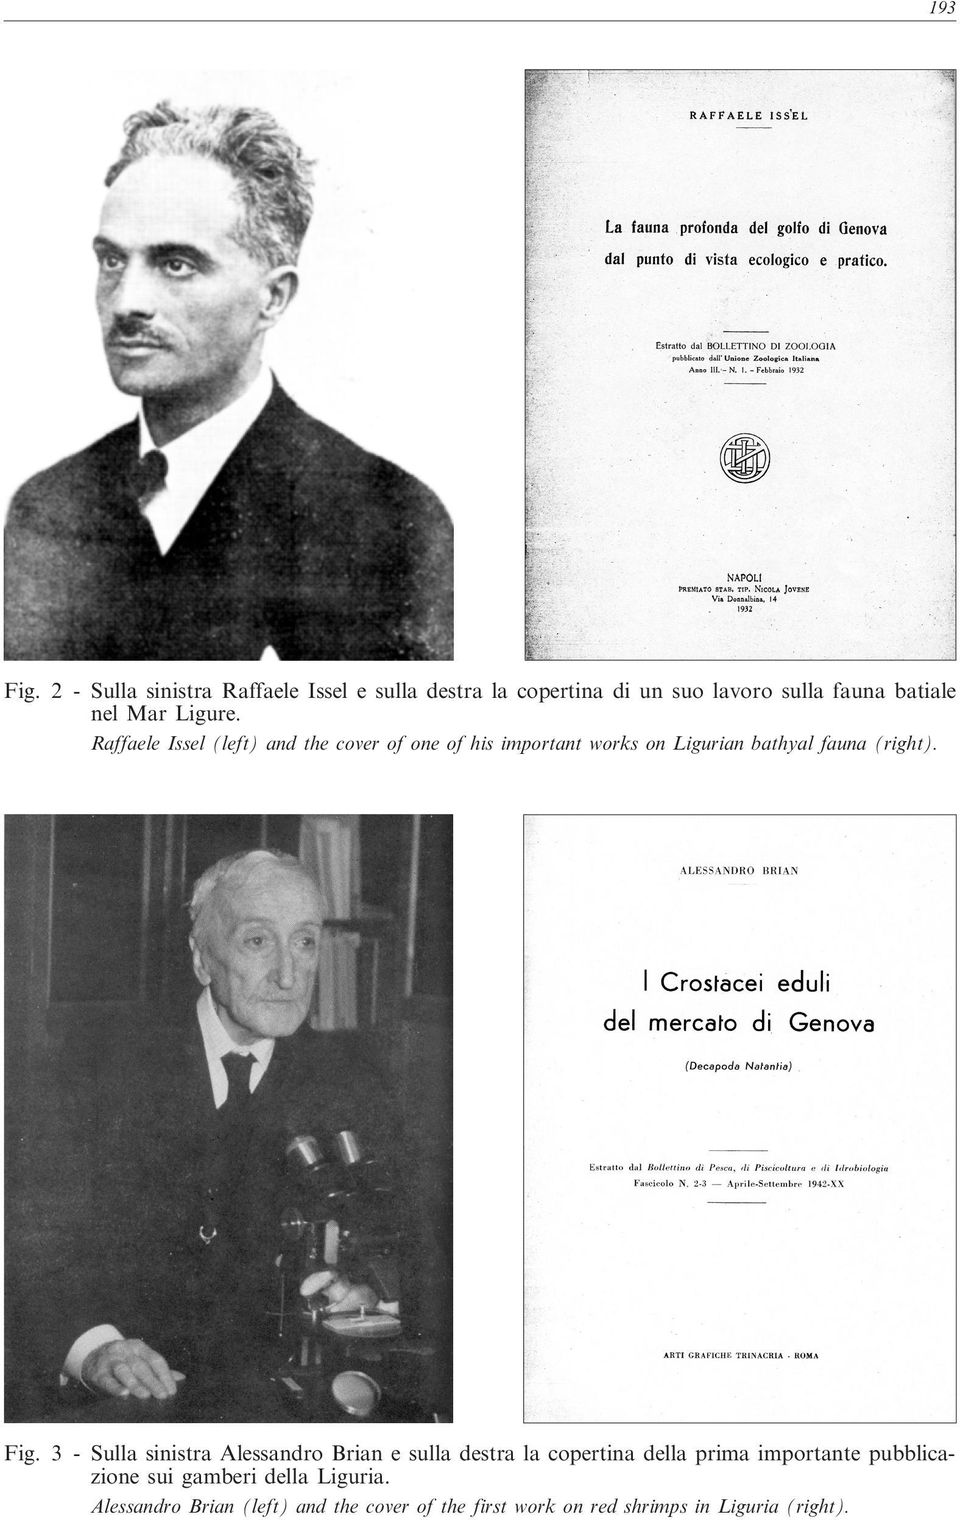 Ligure. Raffaele Issel (left) and the cover of one of his important works on Ligurian bathyal fauna (right).